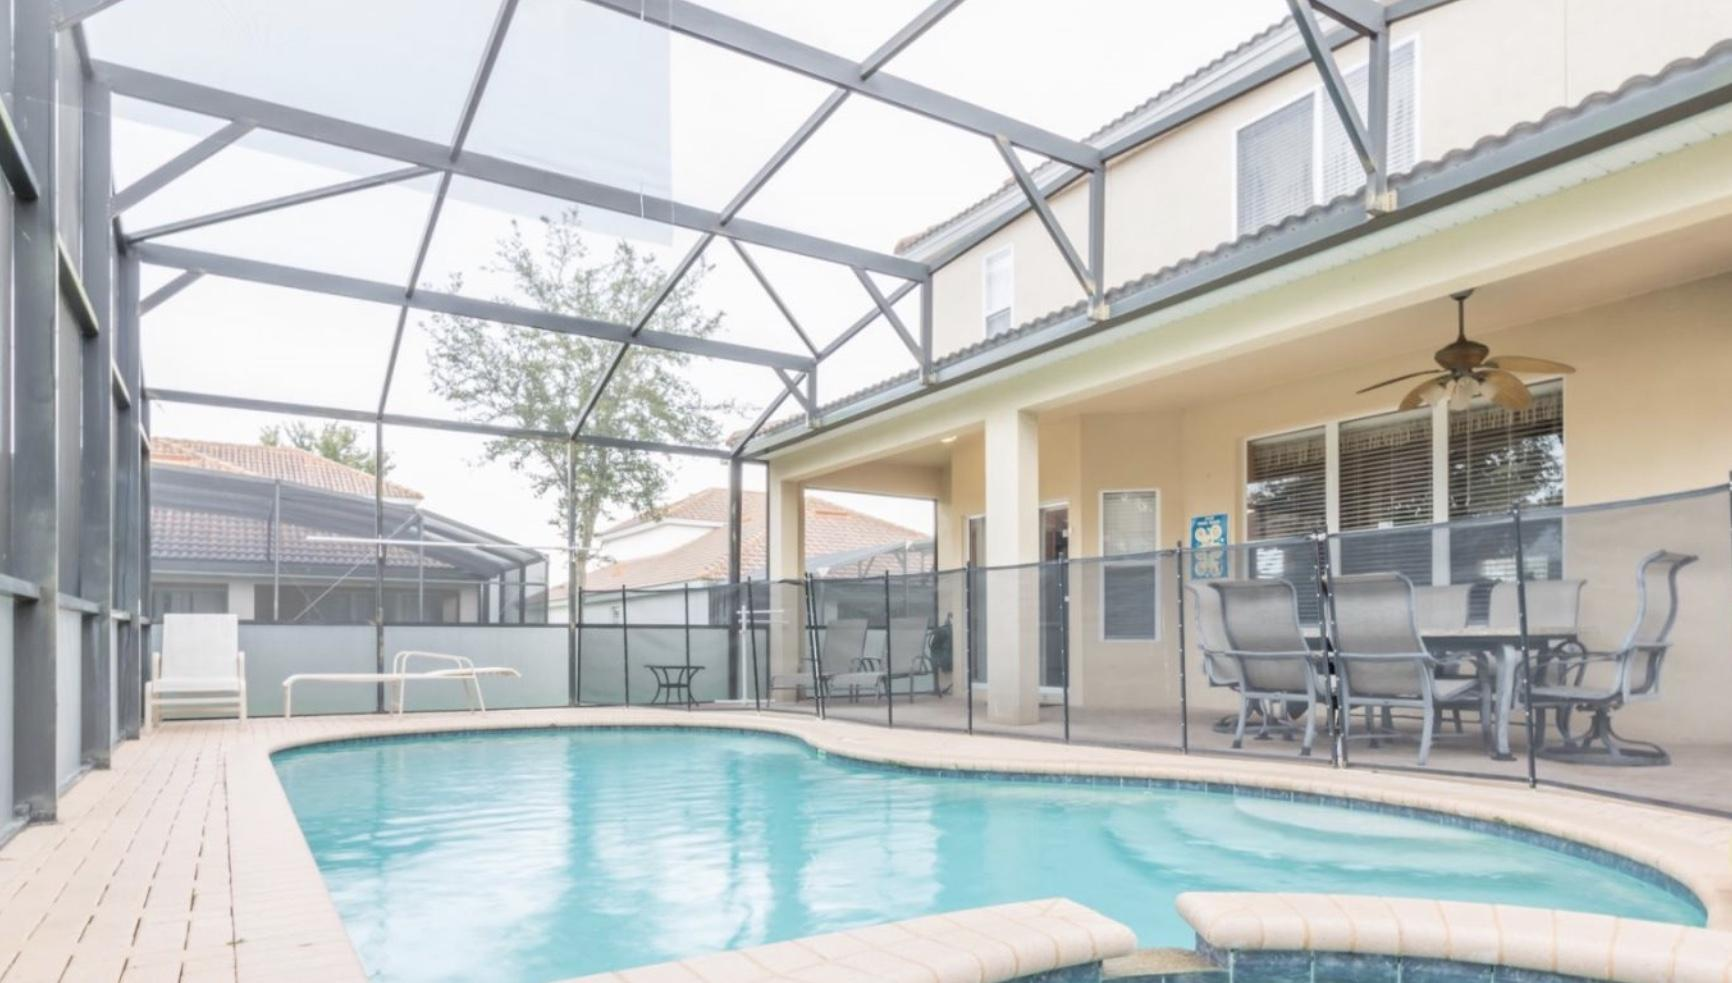 Screened in pool to protect littles